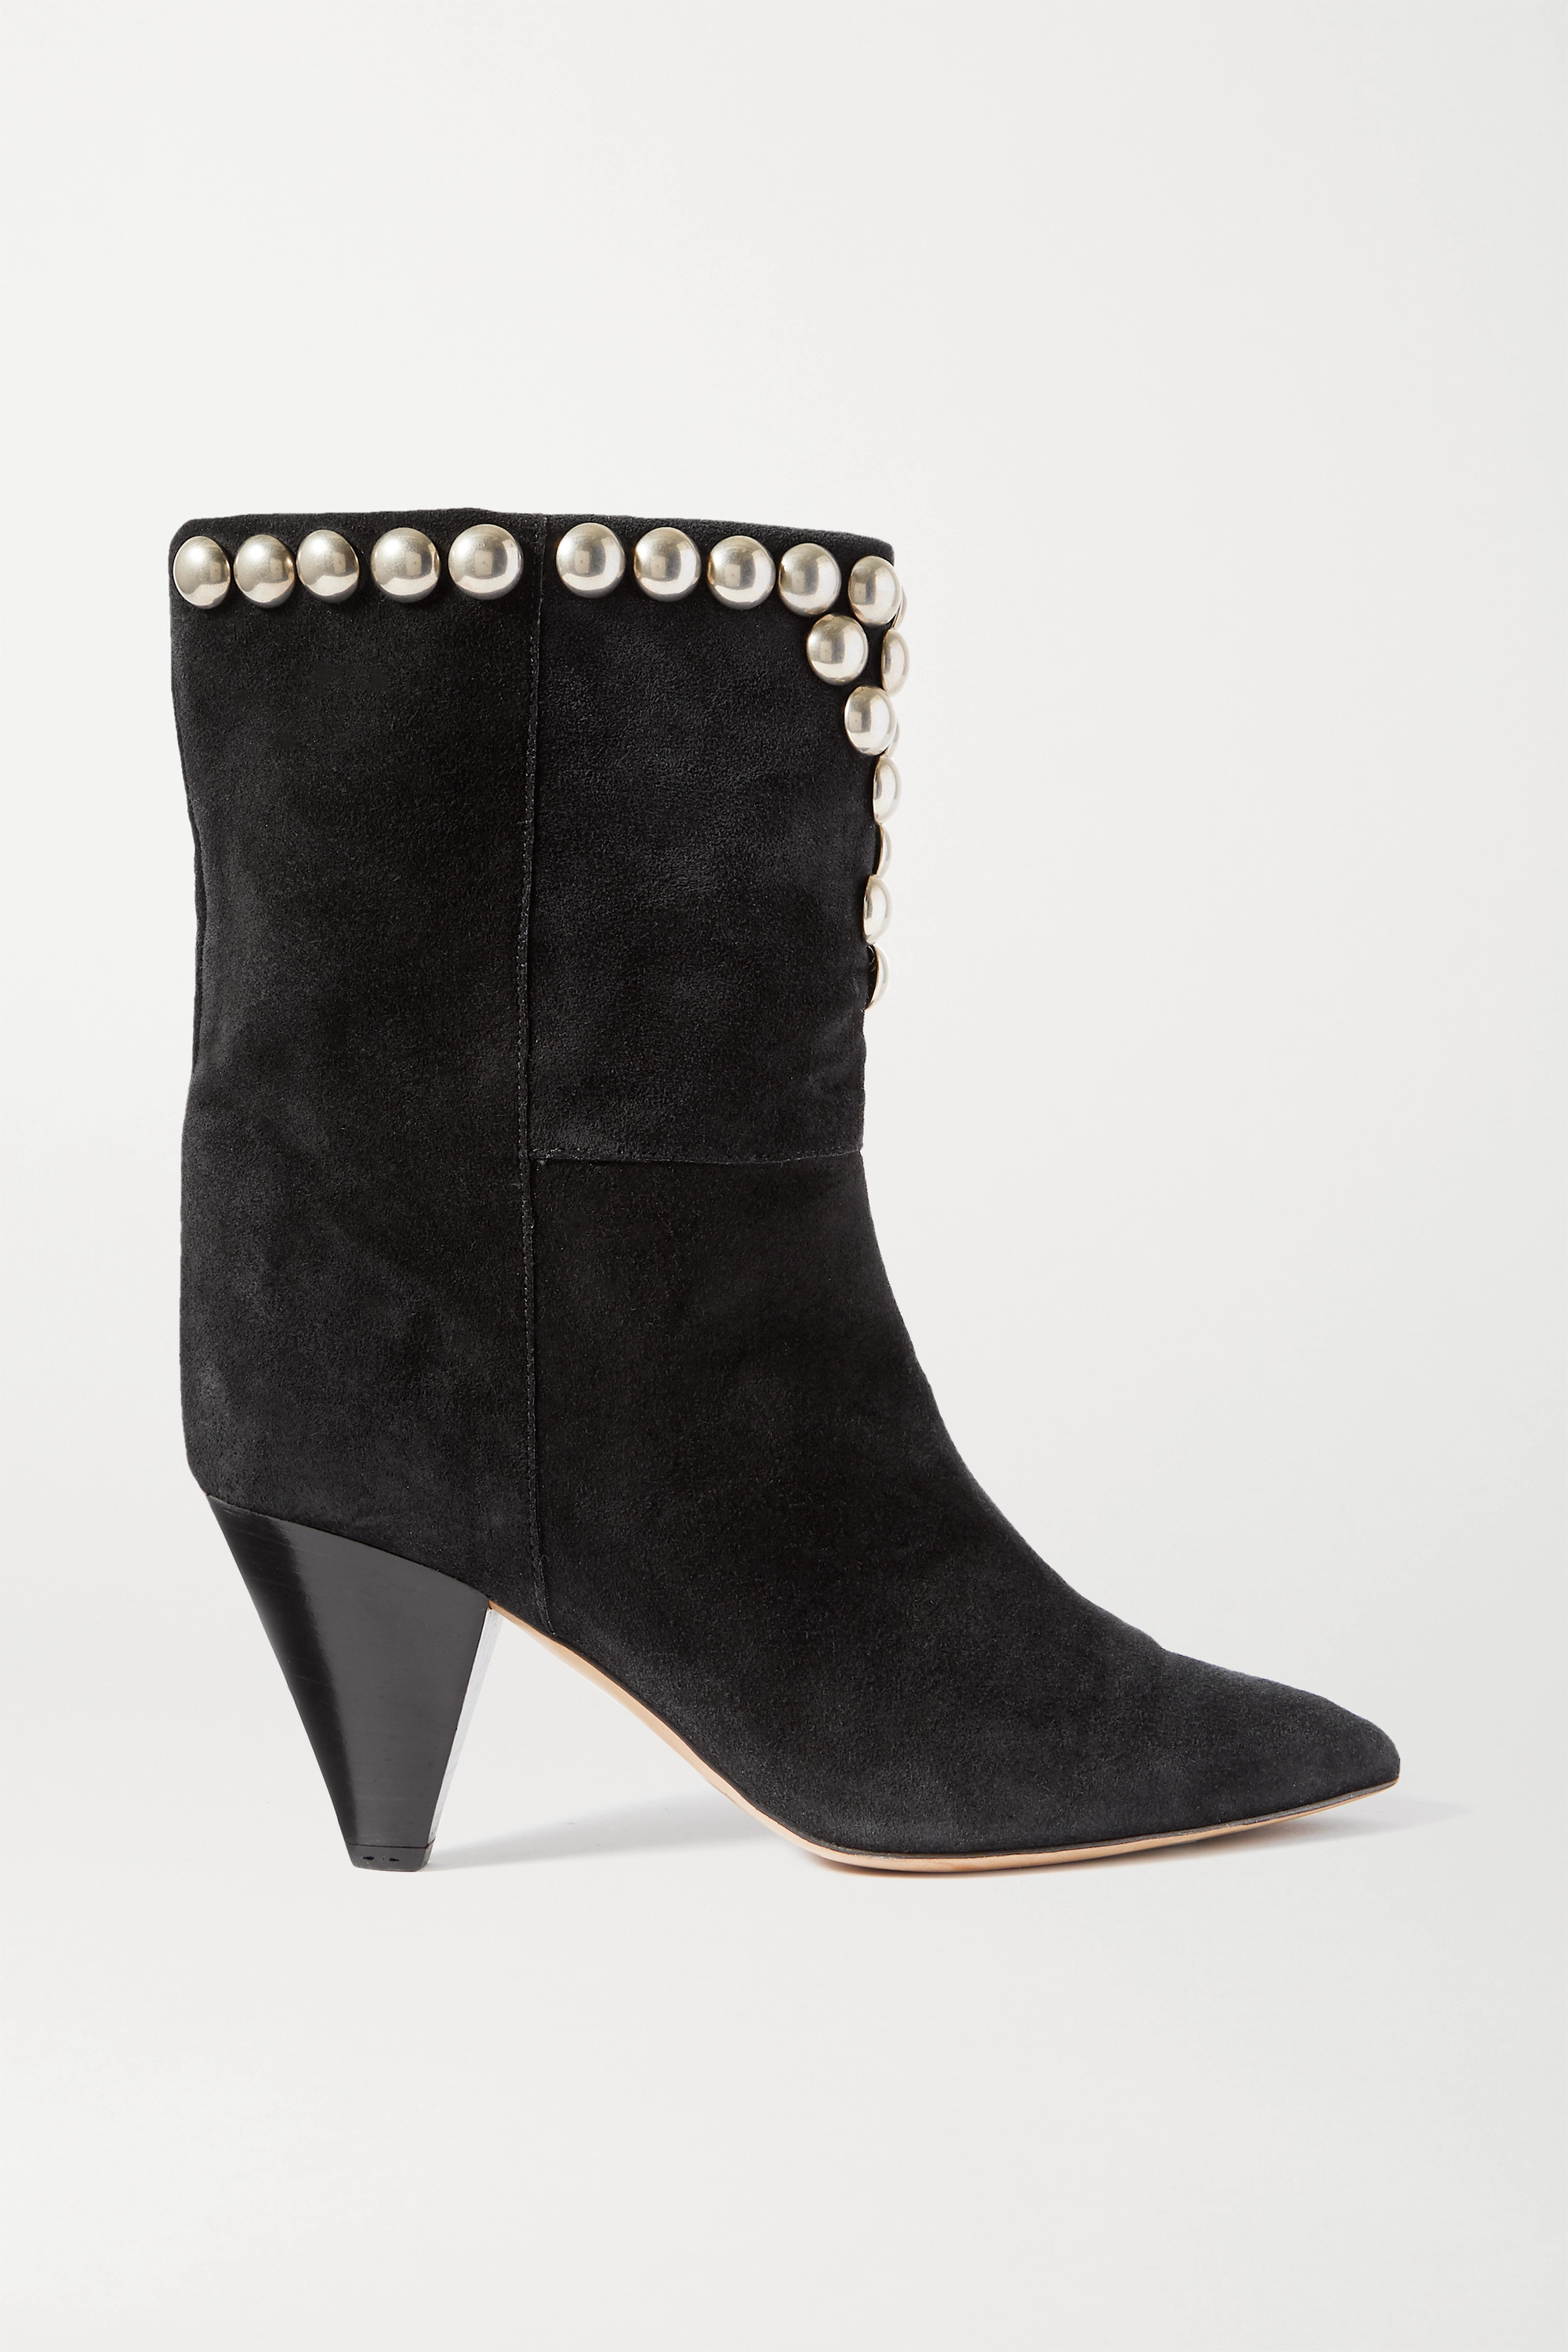 Isabel Marant Lunee studded suede ankle boots